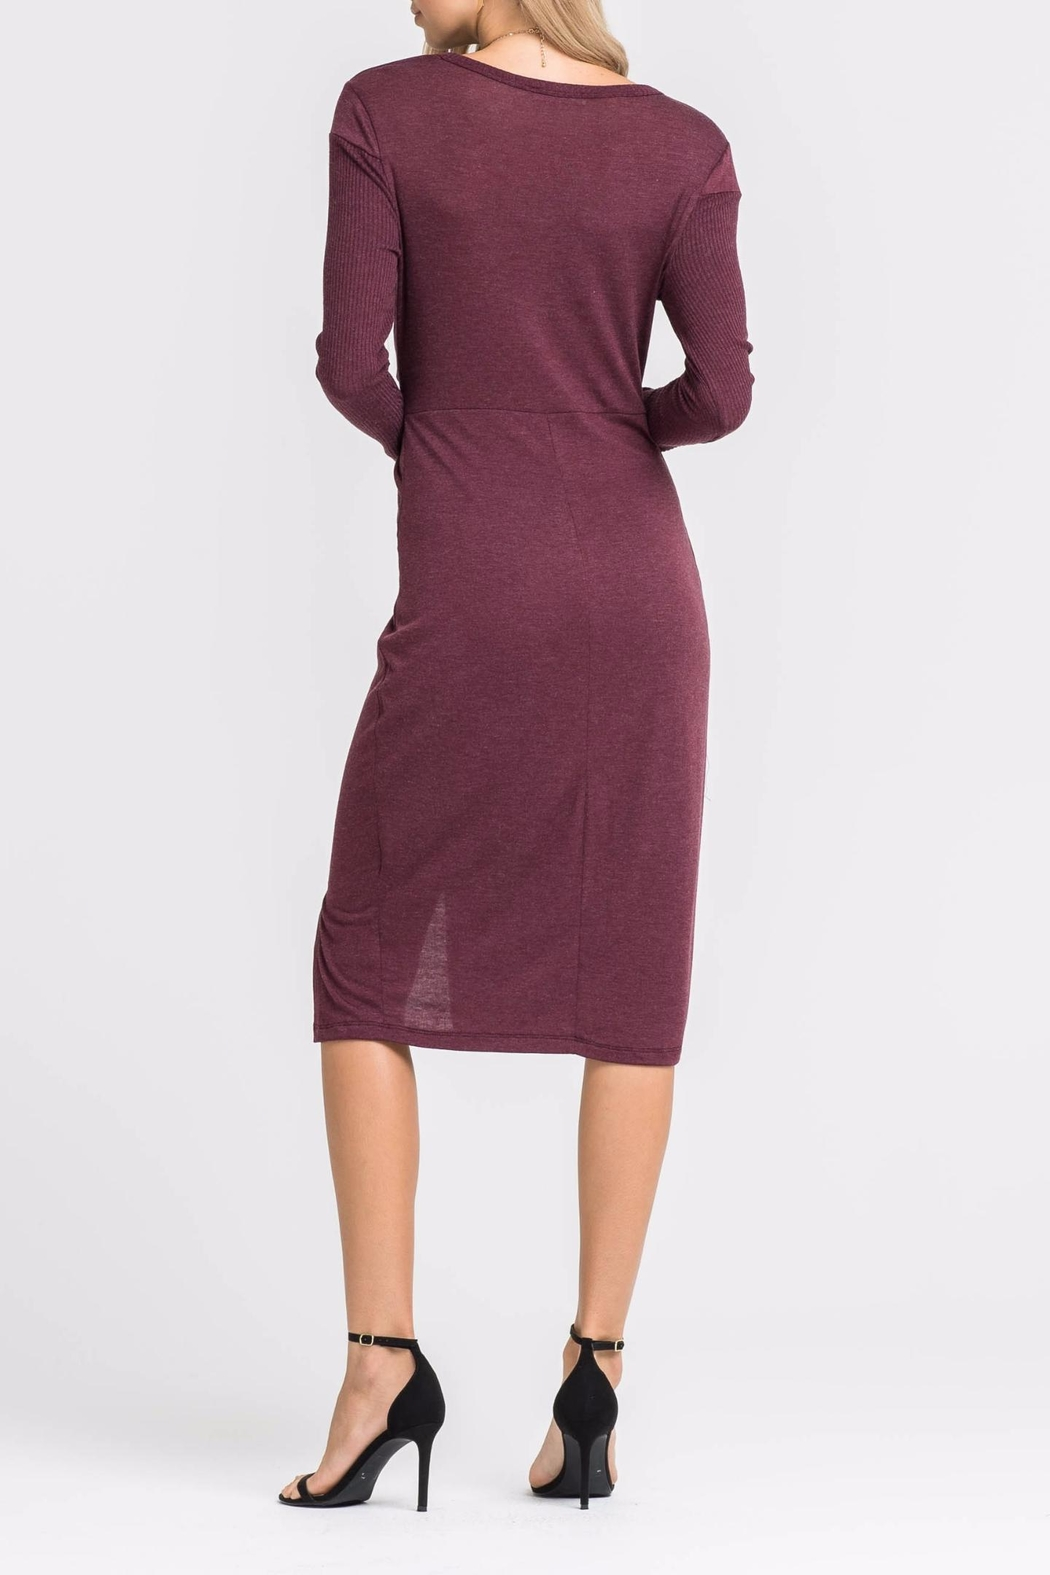 Lush Knotted Front Dress - Side Cropped Image